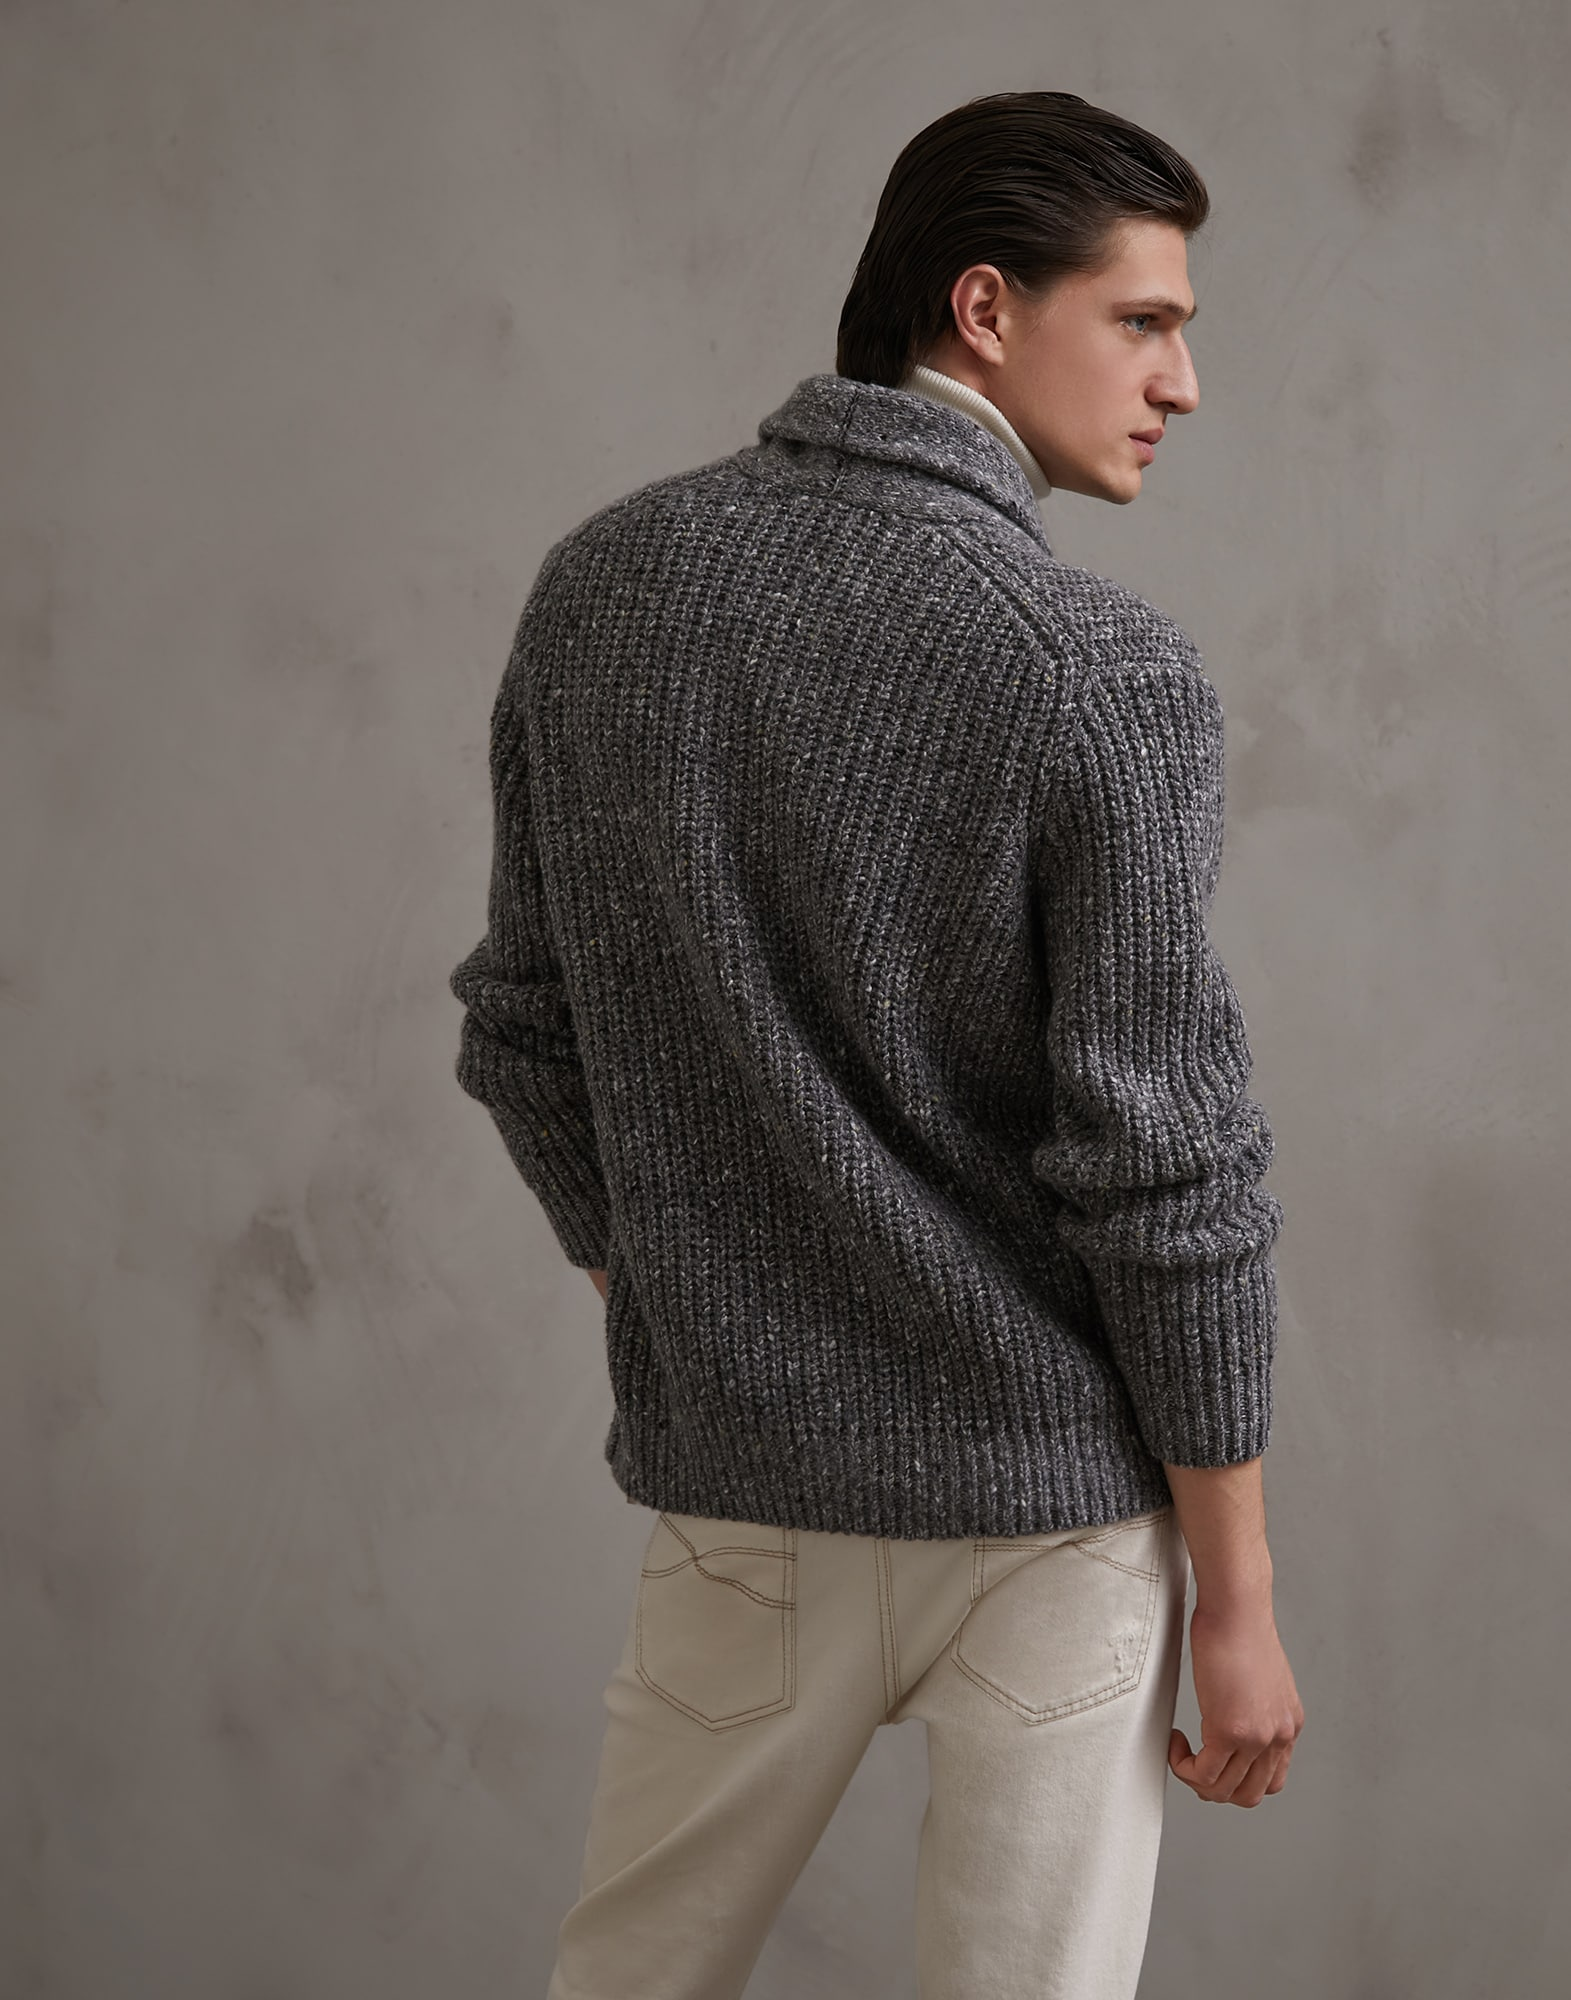 Button-front Cardigan Grey Man 1 - Brunello Cucinelli